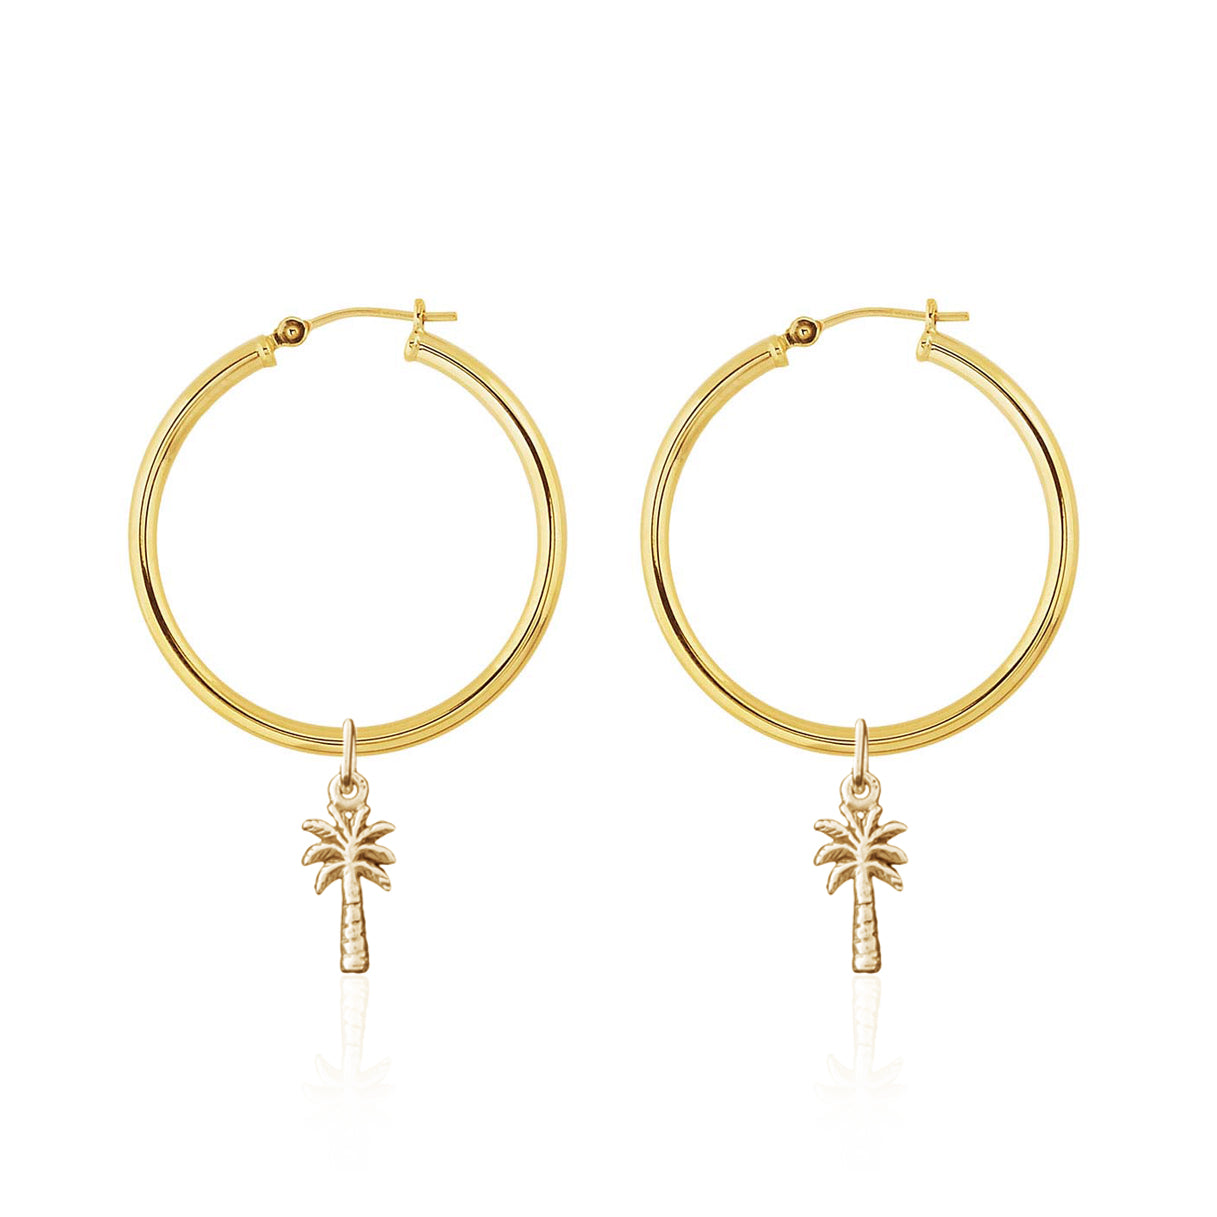 Hoop Earrings - Palm Springs (Gold)